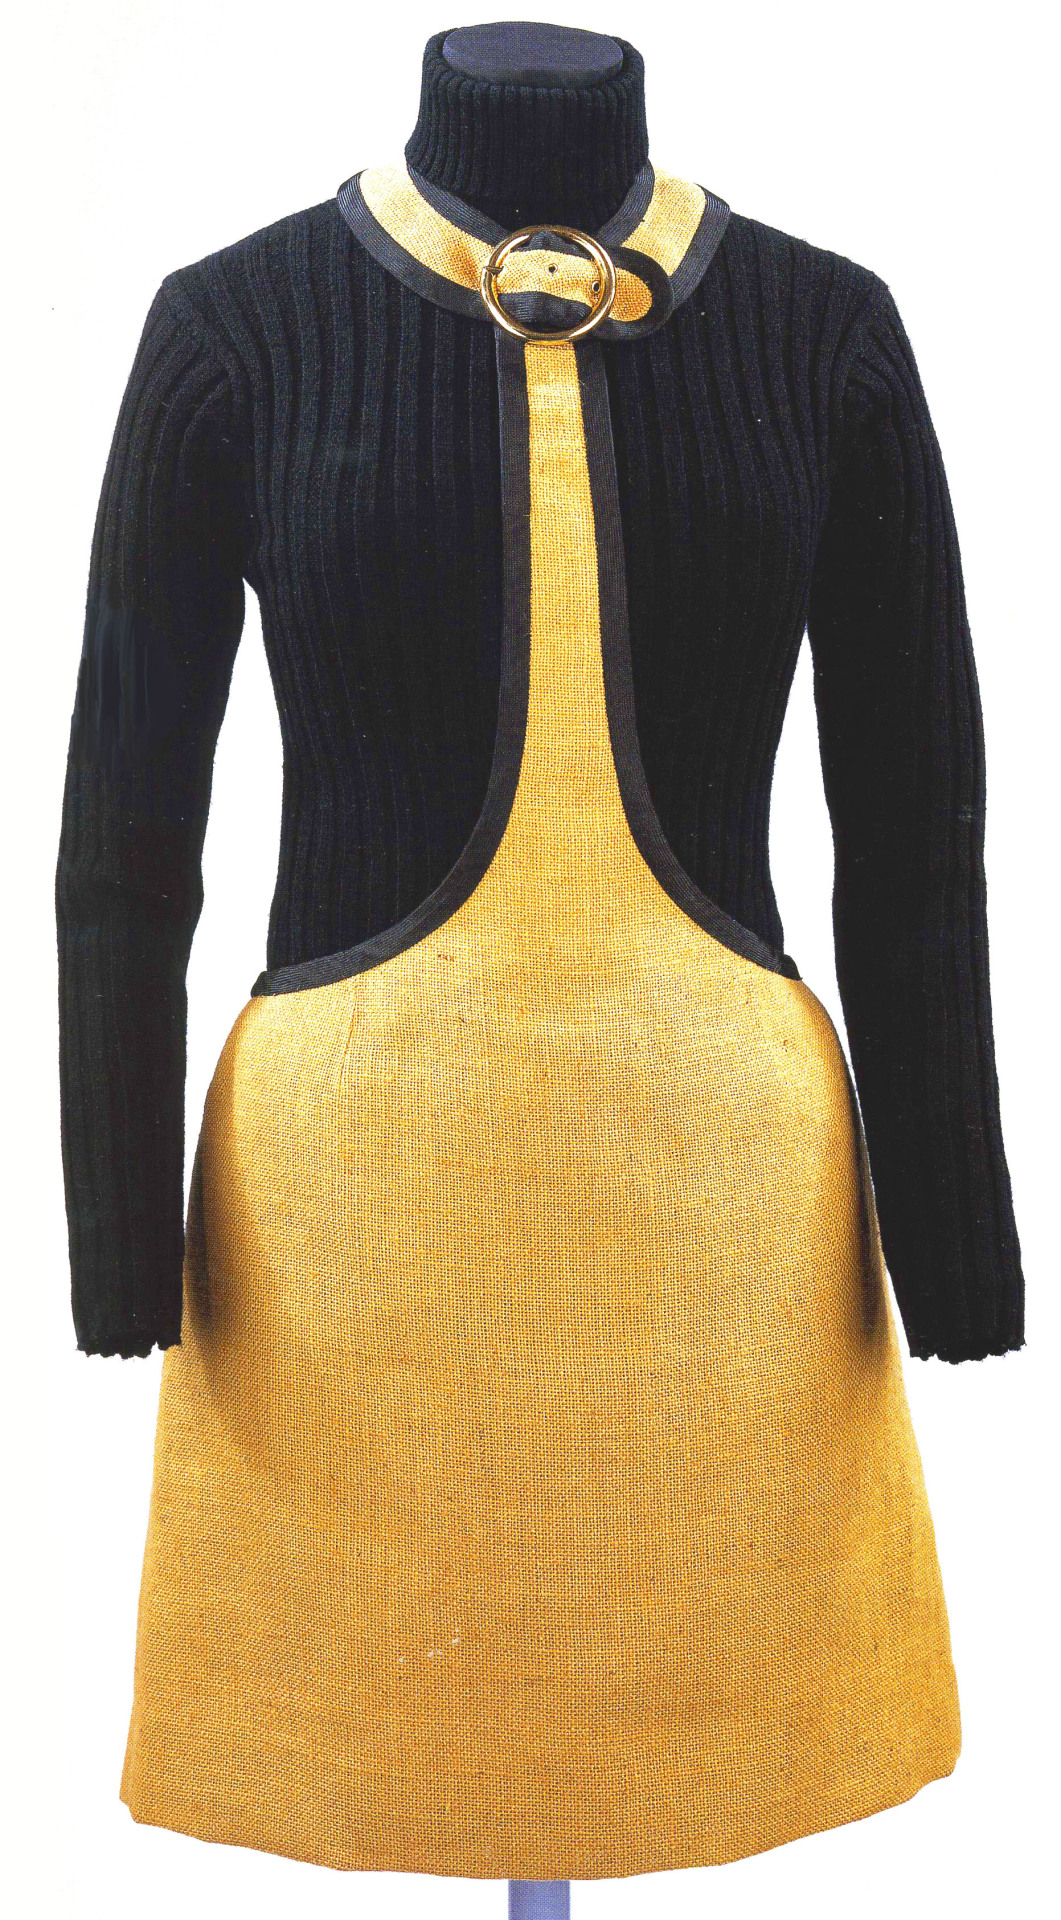 dress by Mary Quant